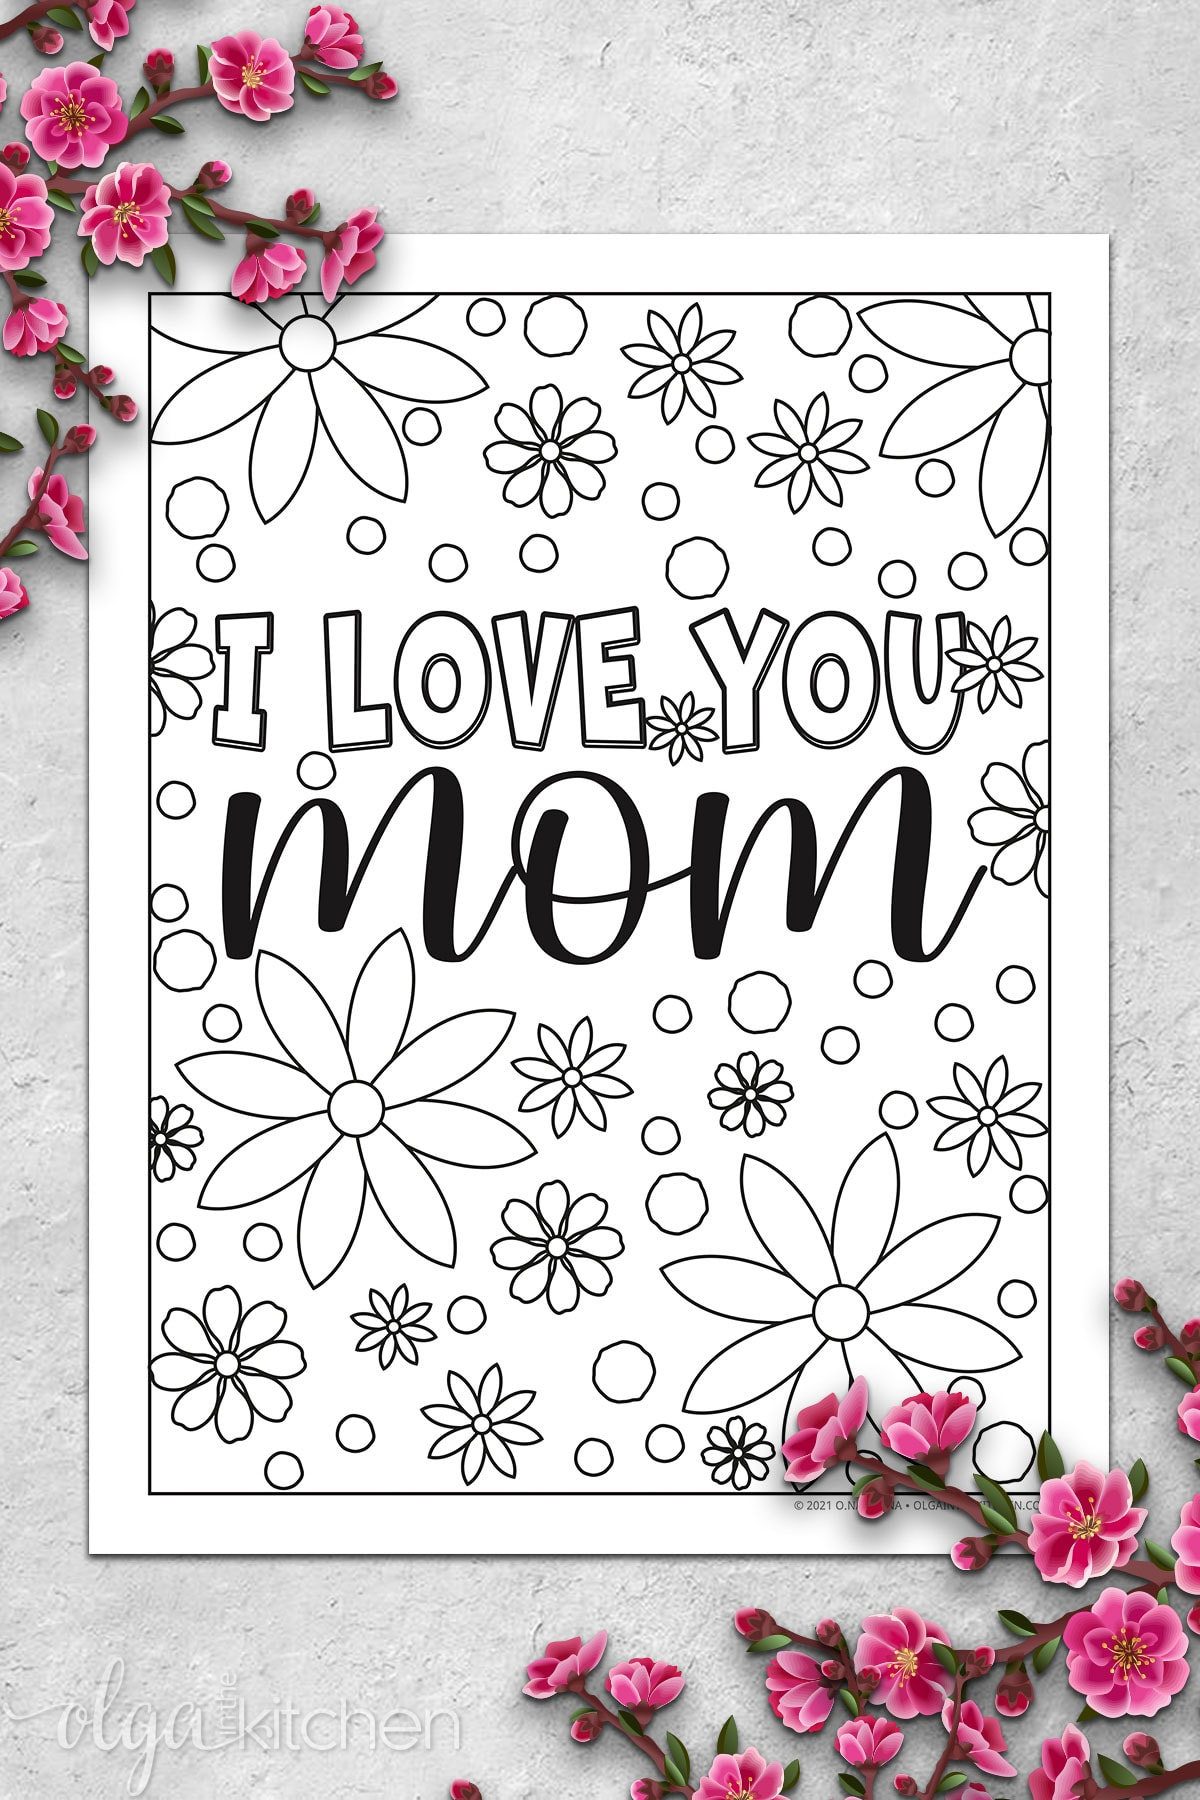 I Love You Mom Coloring Page.